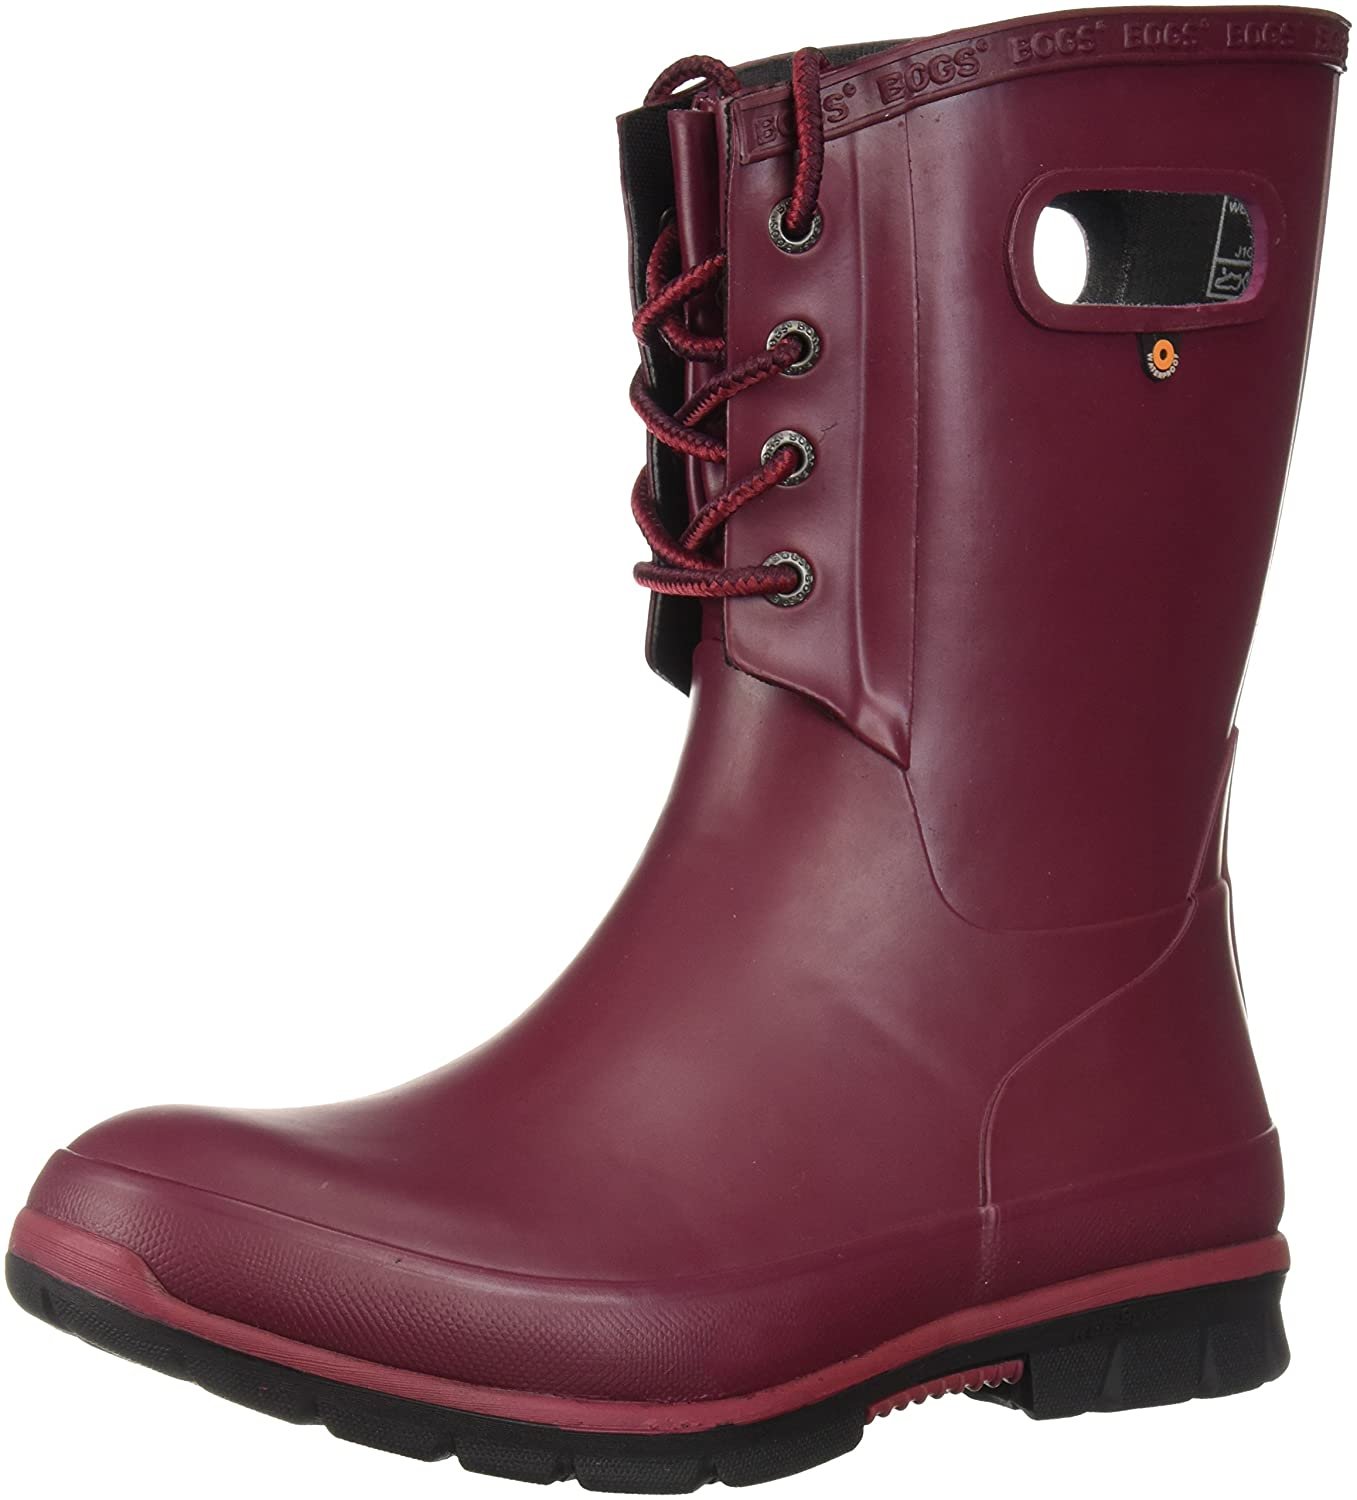 Bogs Women's Amanda 4-Eye Solid Rain Boot B073PZS7V6 7 B(M) US|Burgundy